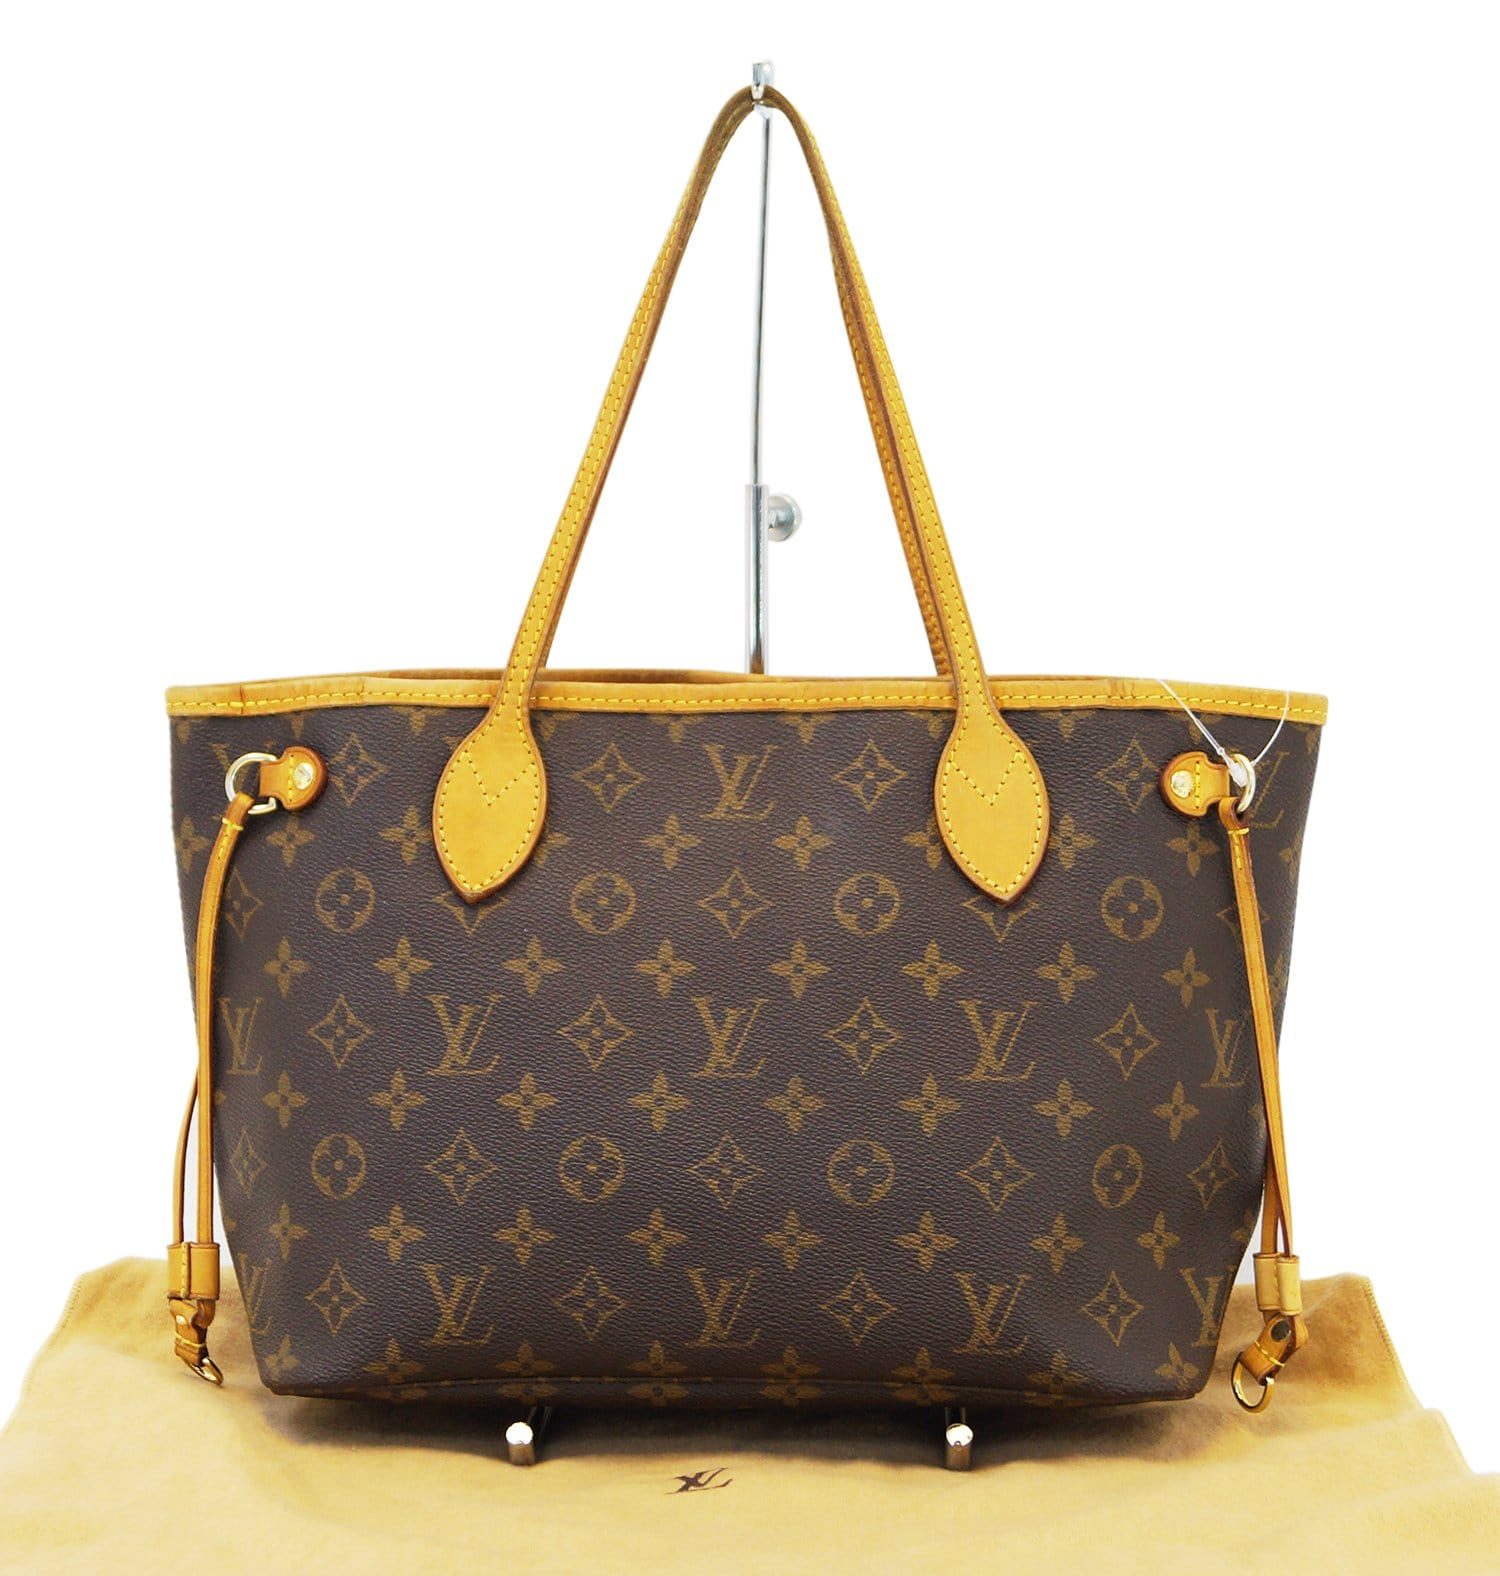 135e8811d1 LOUIS VUITTON Monogram Neverfull PM Tote Bag